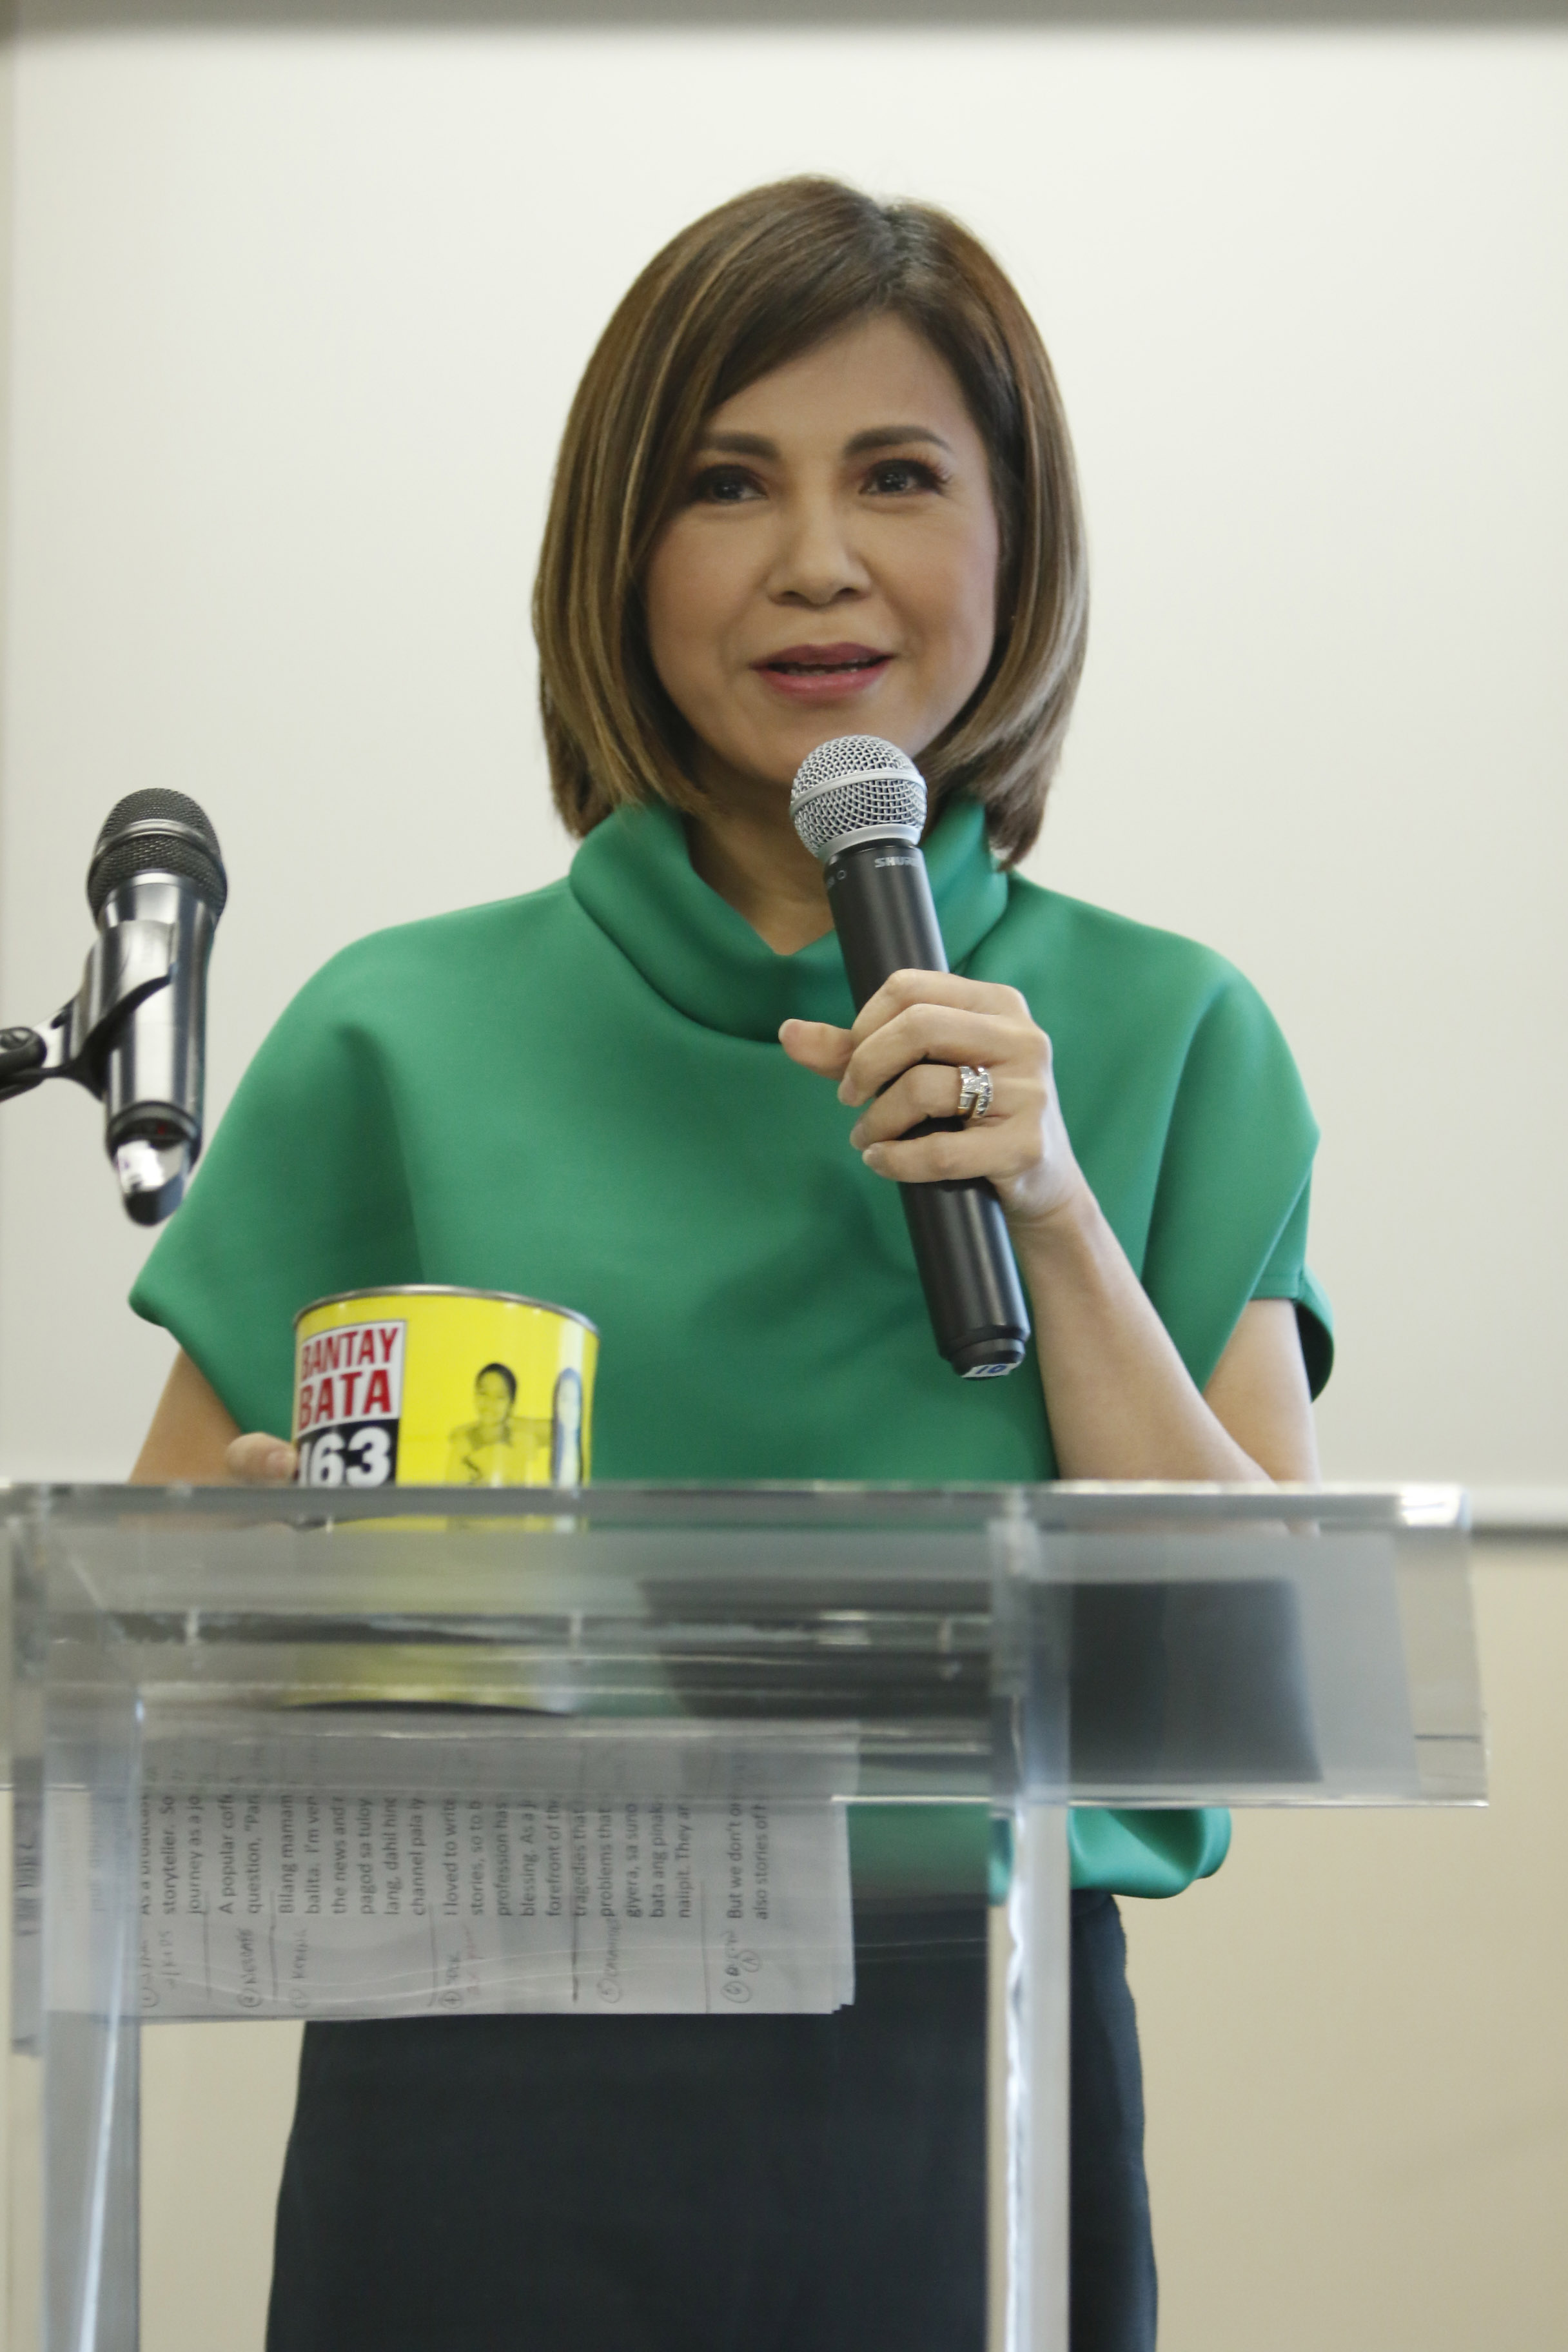 Bantay Bata 163 program director Jing Castañeda